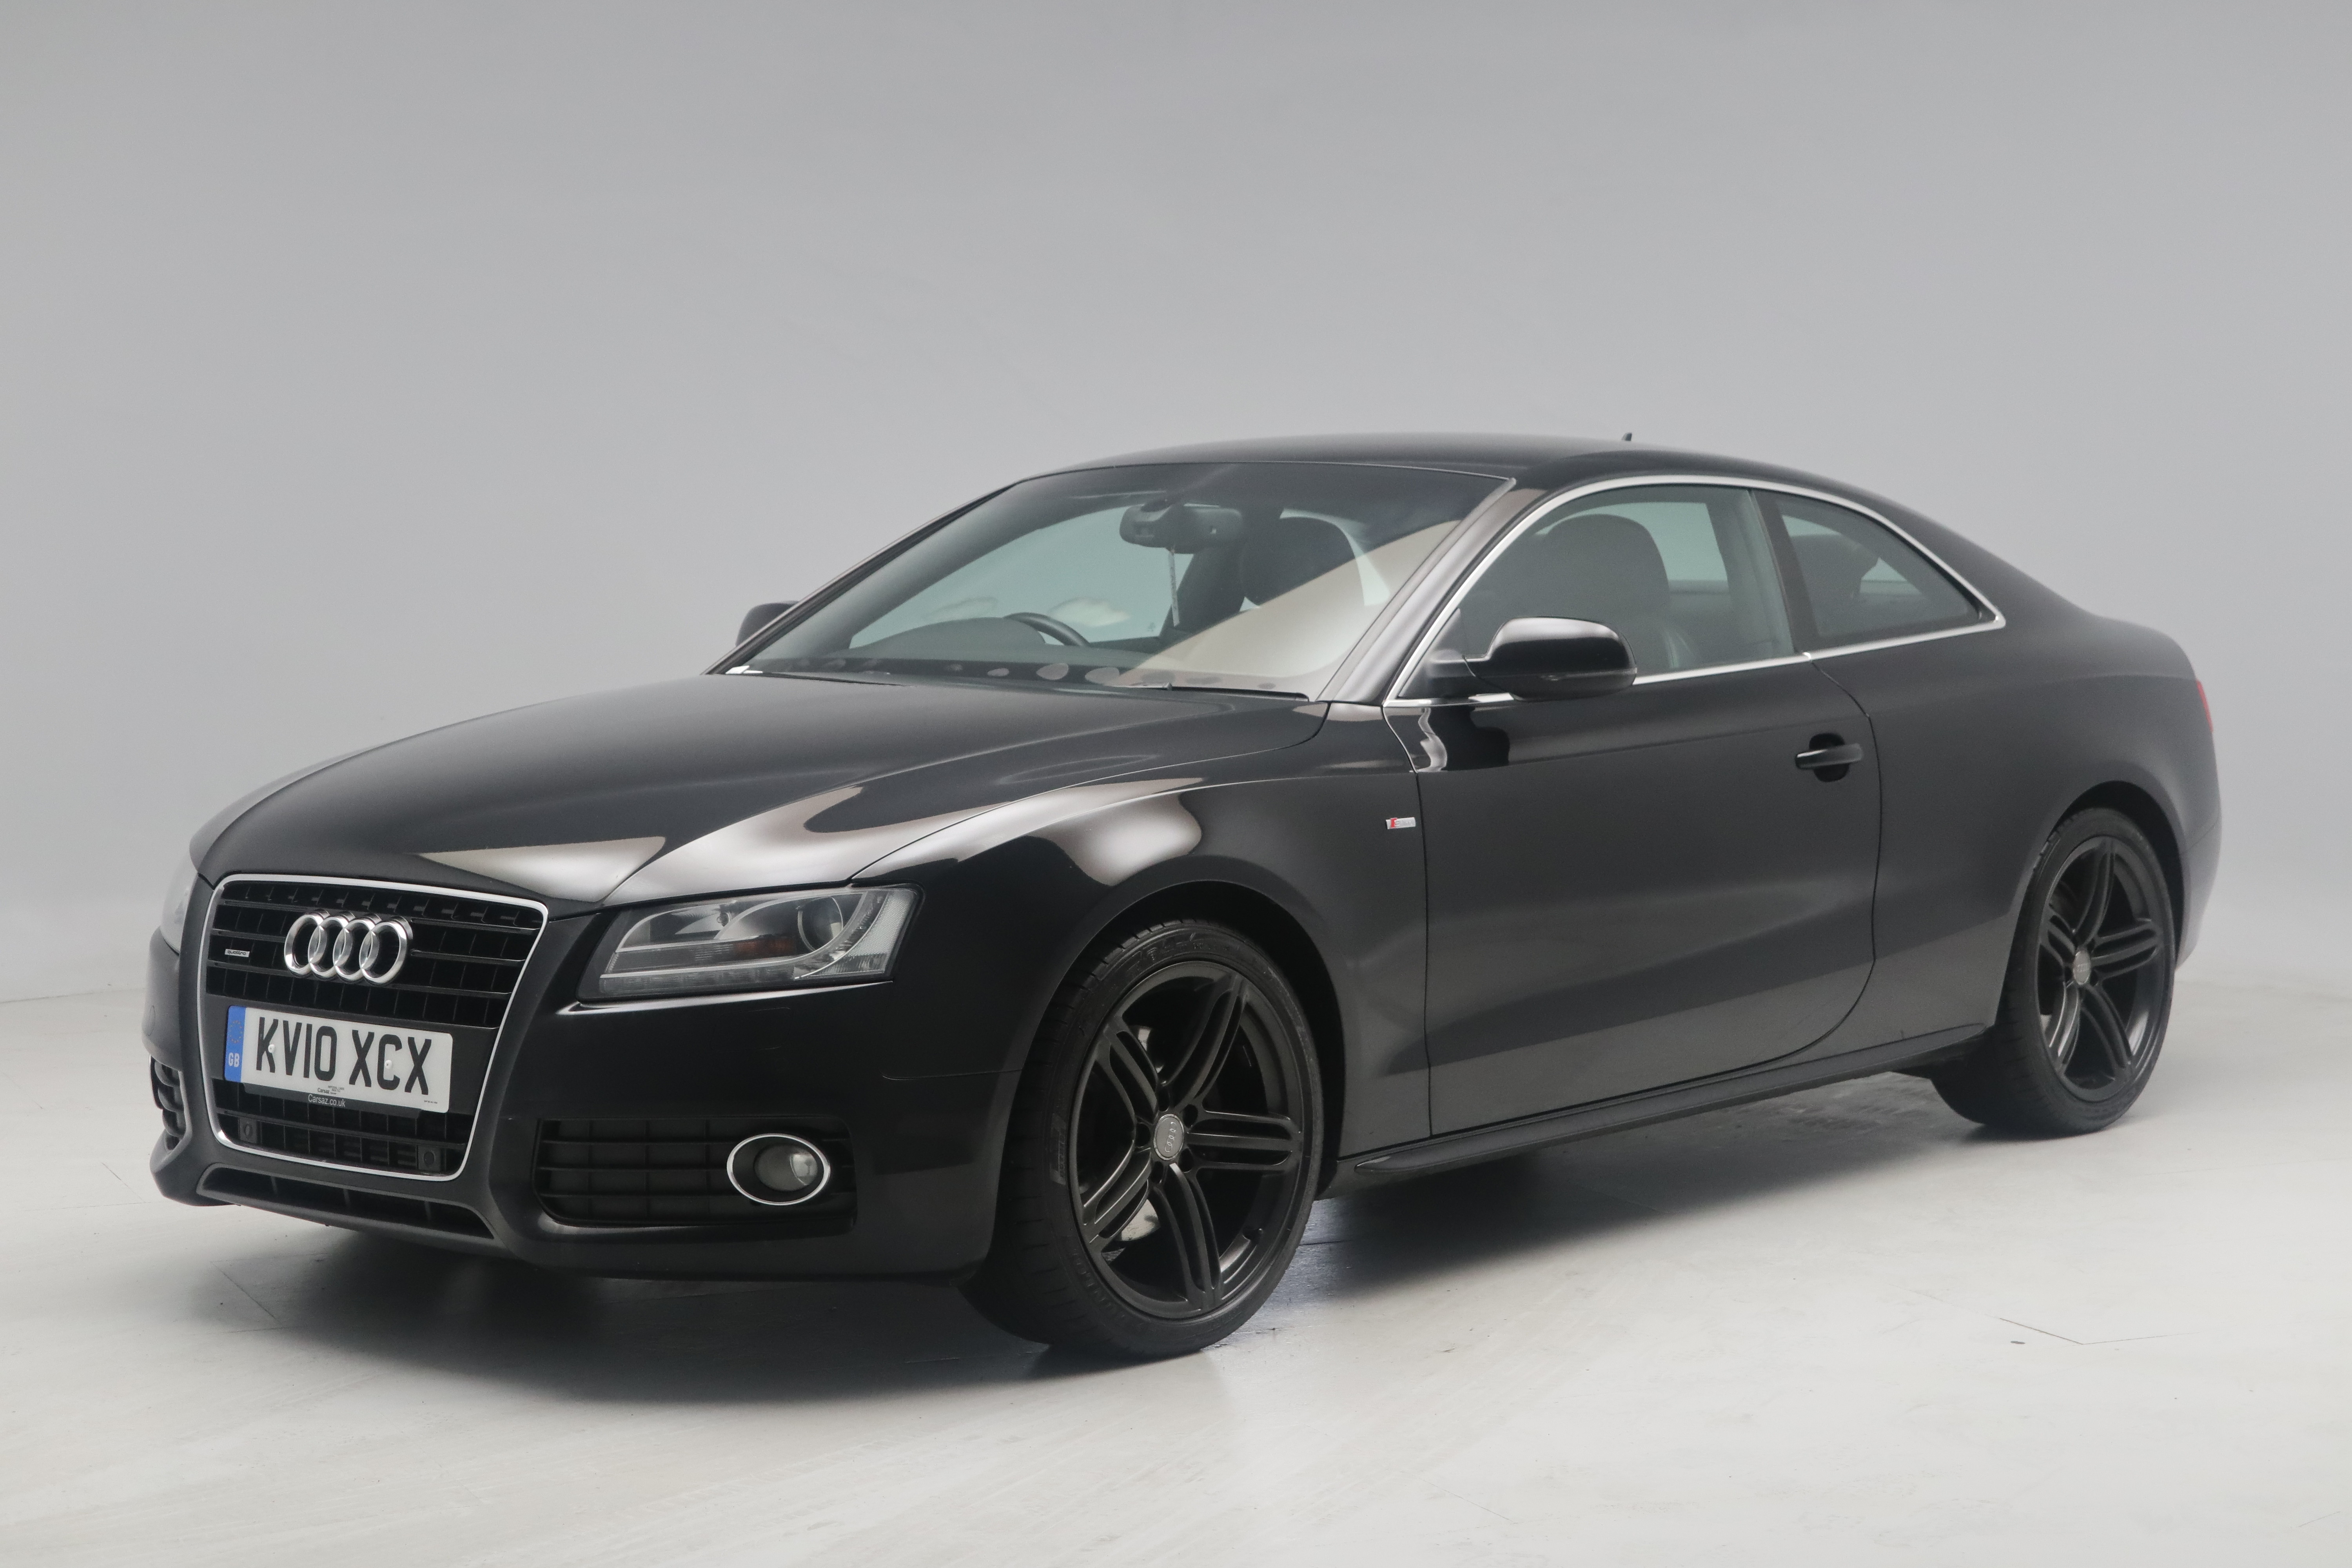 Used Audi A5 3.0 TDI Quattro S Line 2dr S Tronic